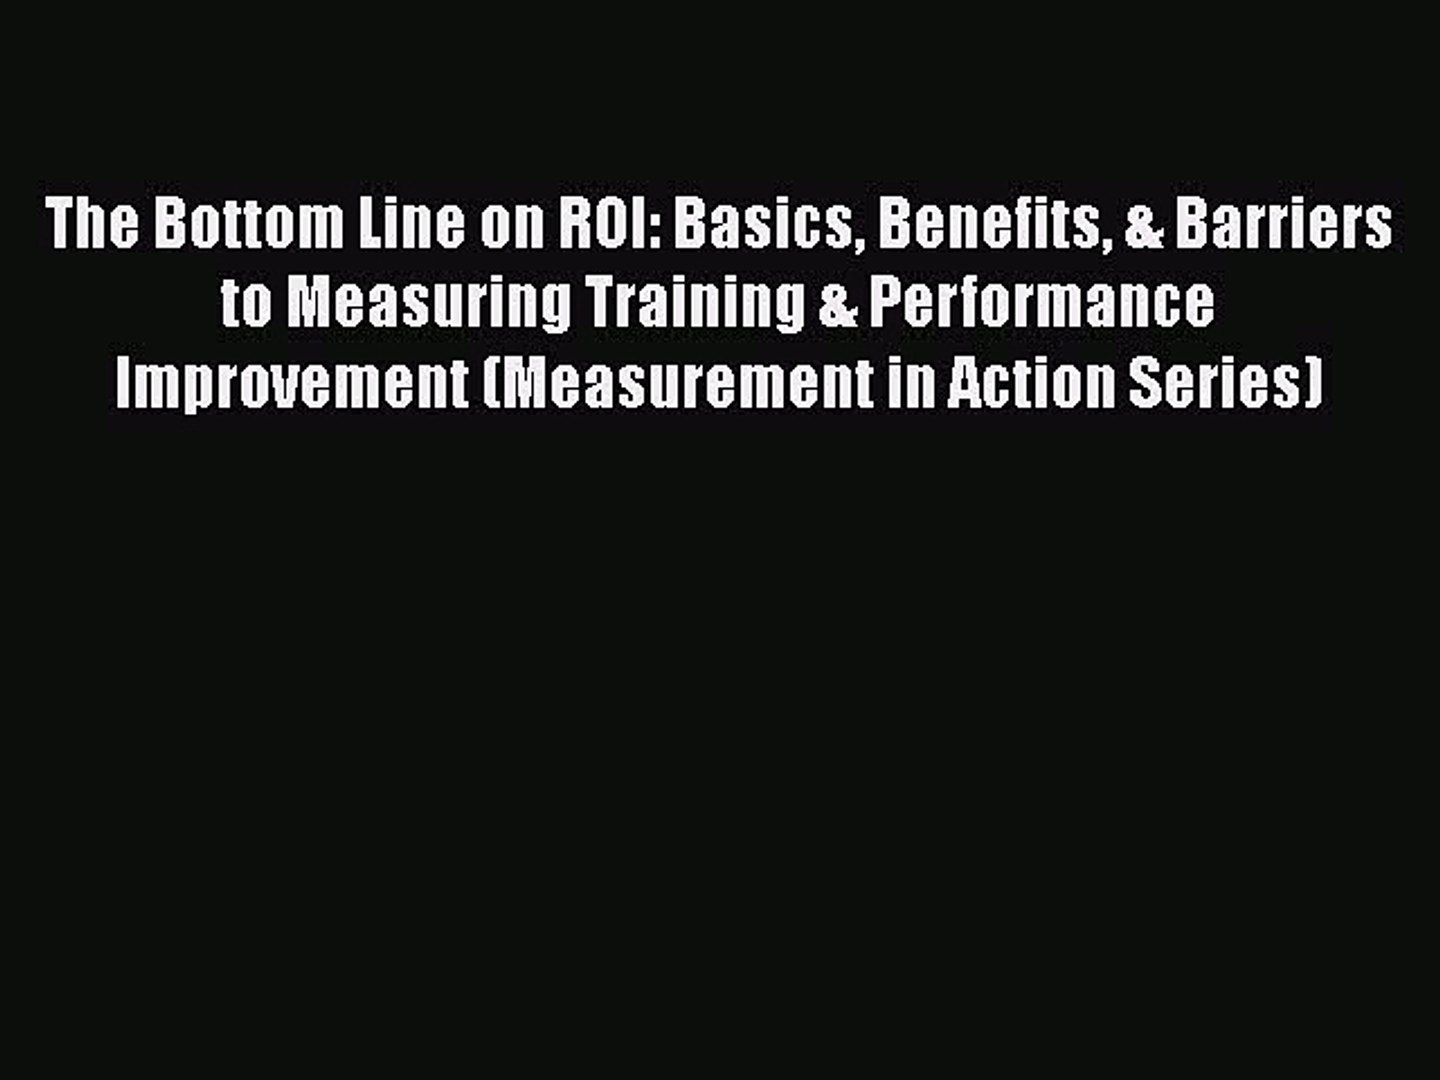 Read The Bottom Line on ROI: Basics Benefits & Barriers to Measuring Training & Performance